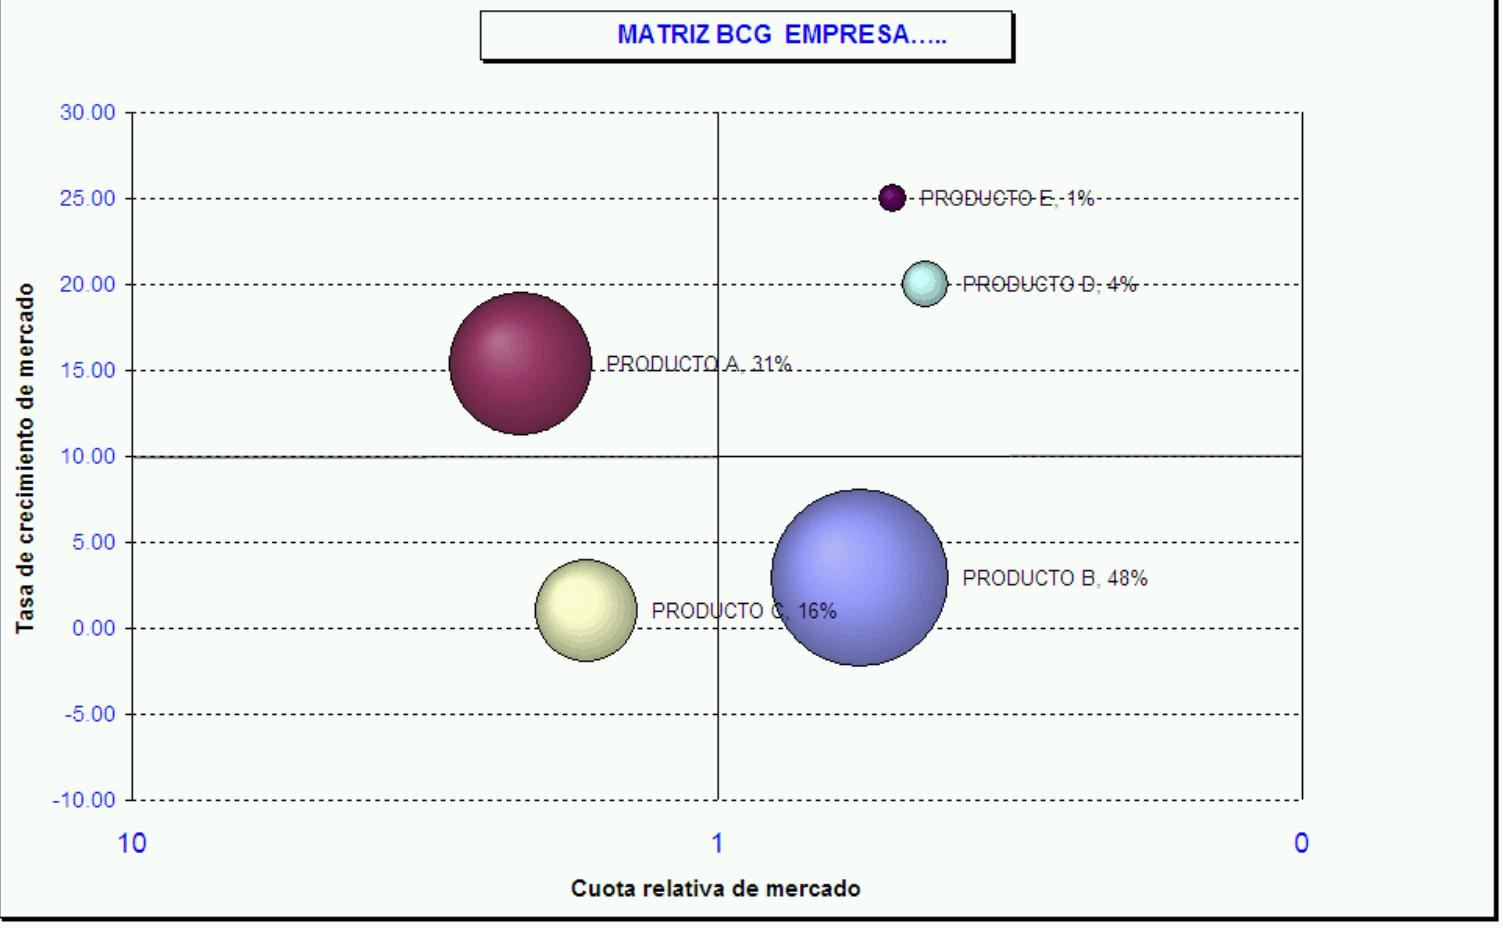 ejemplo empresa matriz boston consulting group: